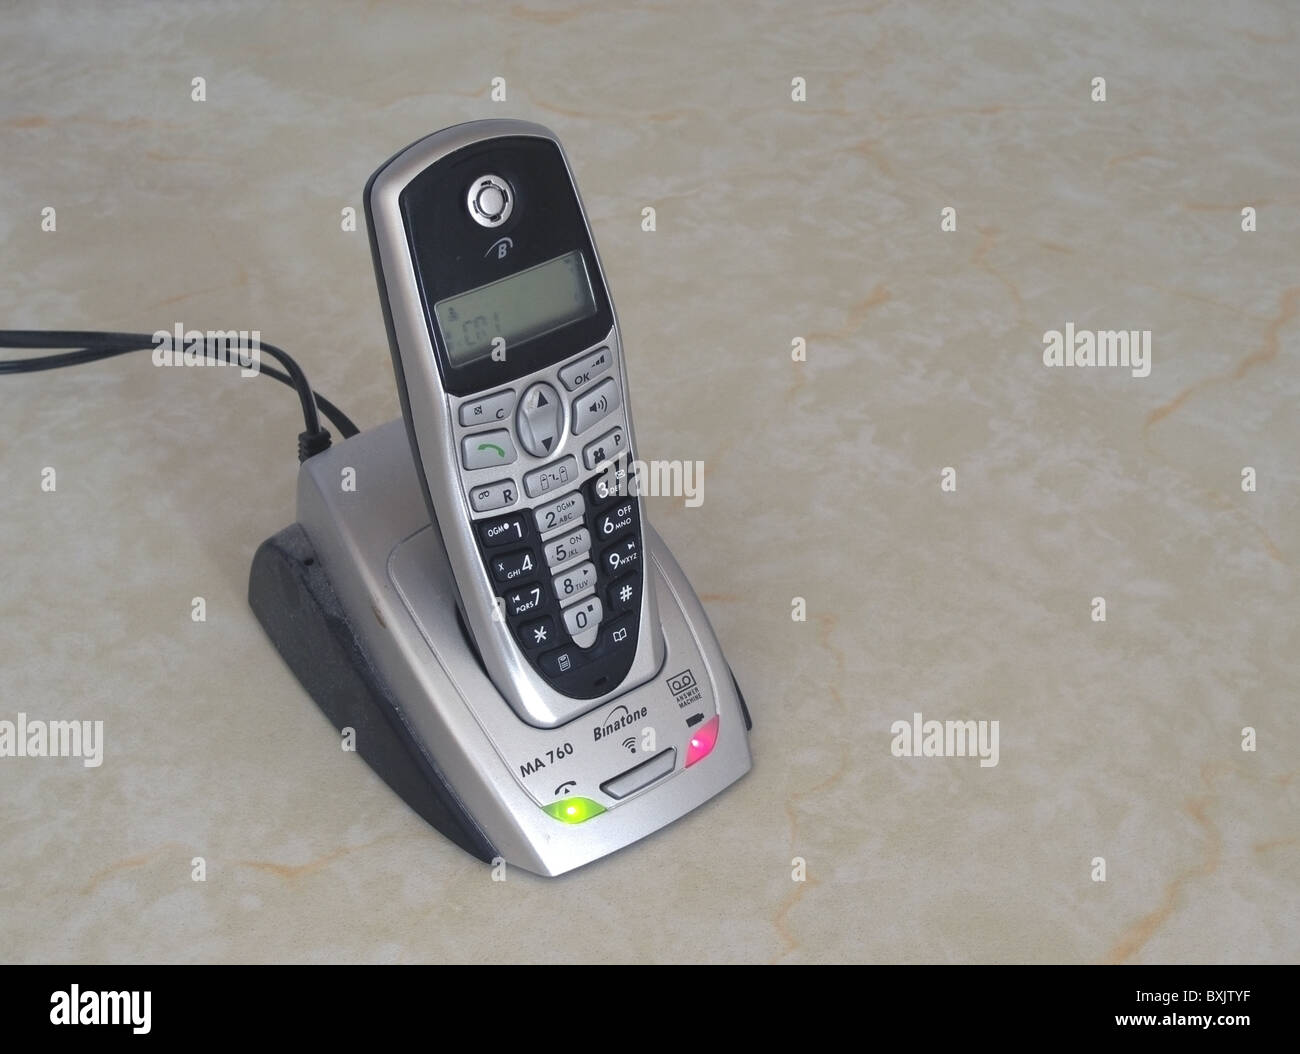 Binatone Cordless Telephone Charging Up in it's Docking Station, UK - Stock Image